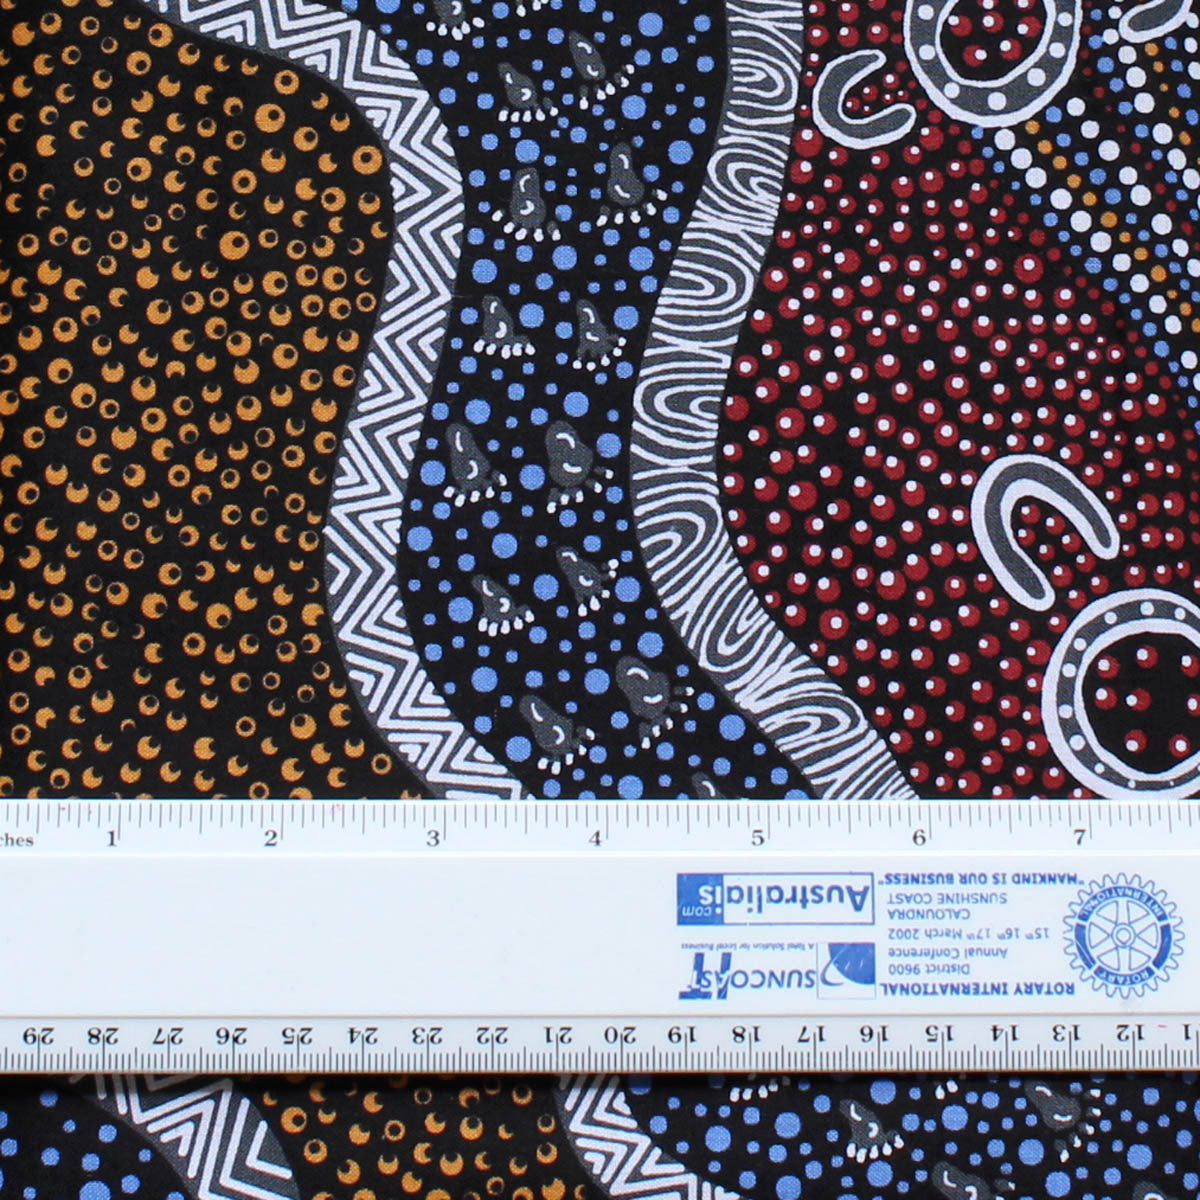 GOANNA DREAMING BLACK by Aboriginal Artist HEATHER KENNEDY